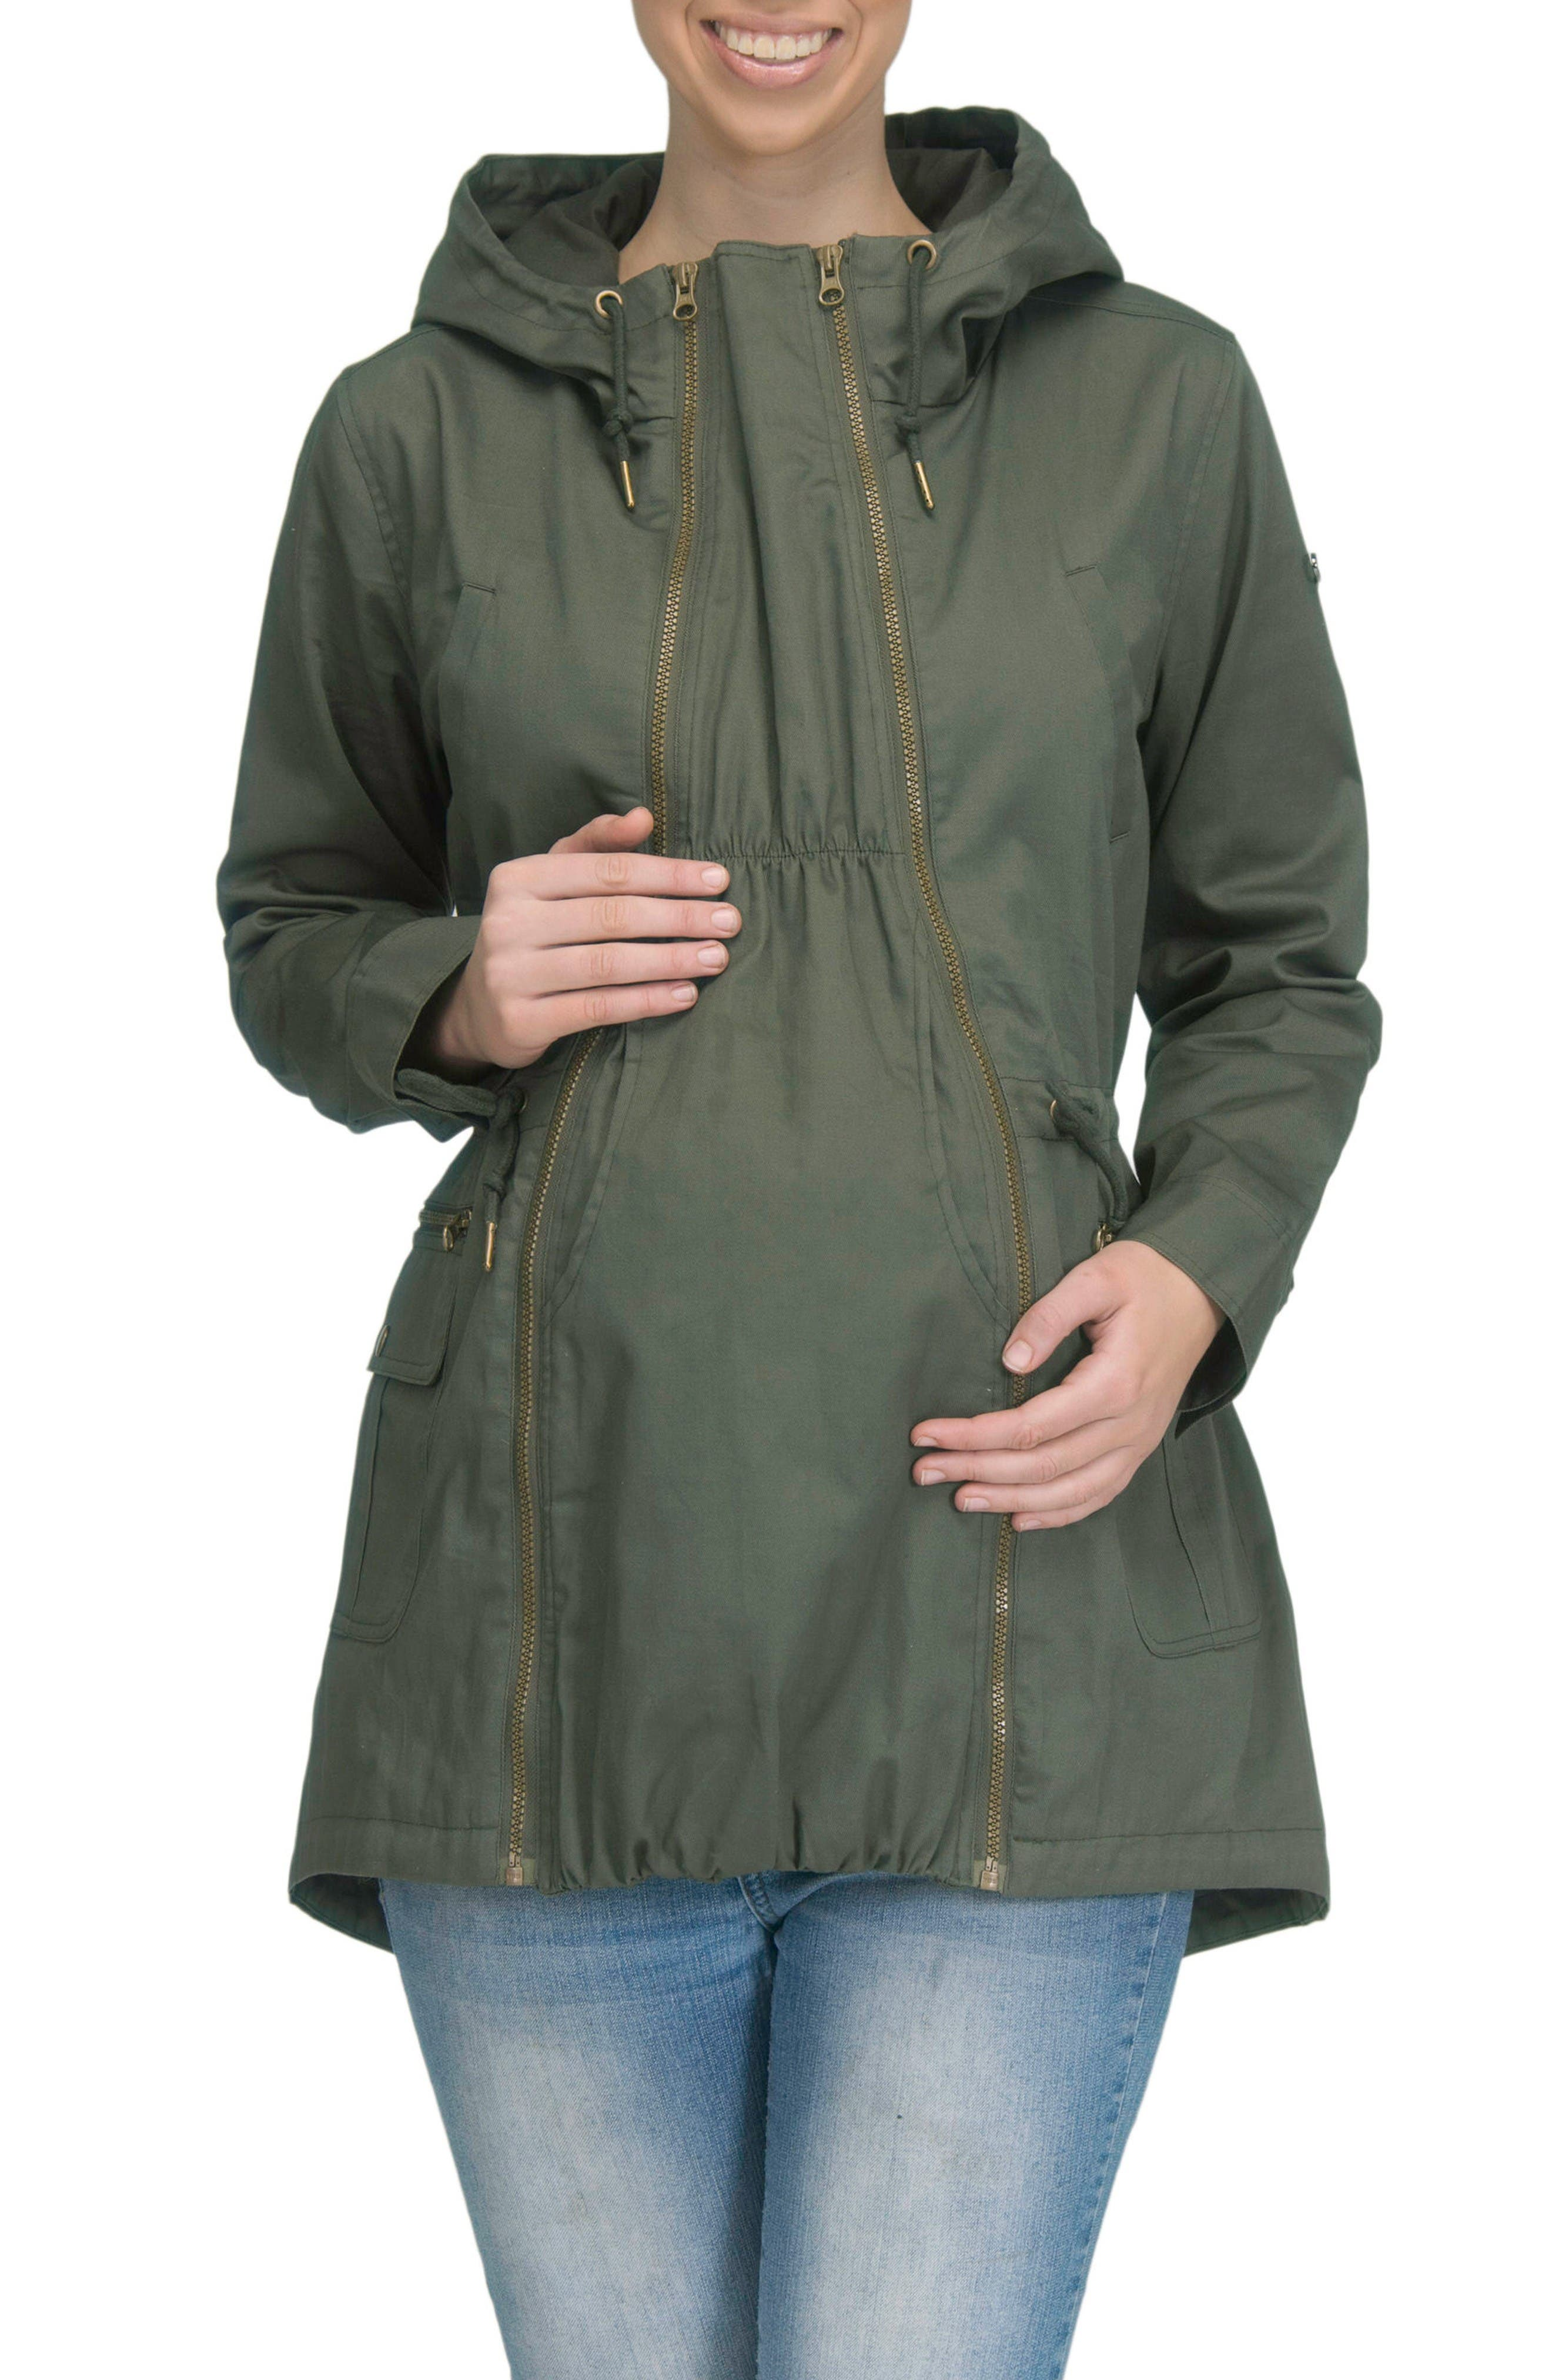 Alternate Image 1 Selected - Modern Eternity Convertible Military Maternity Jacket